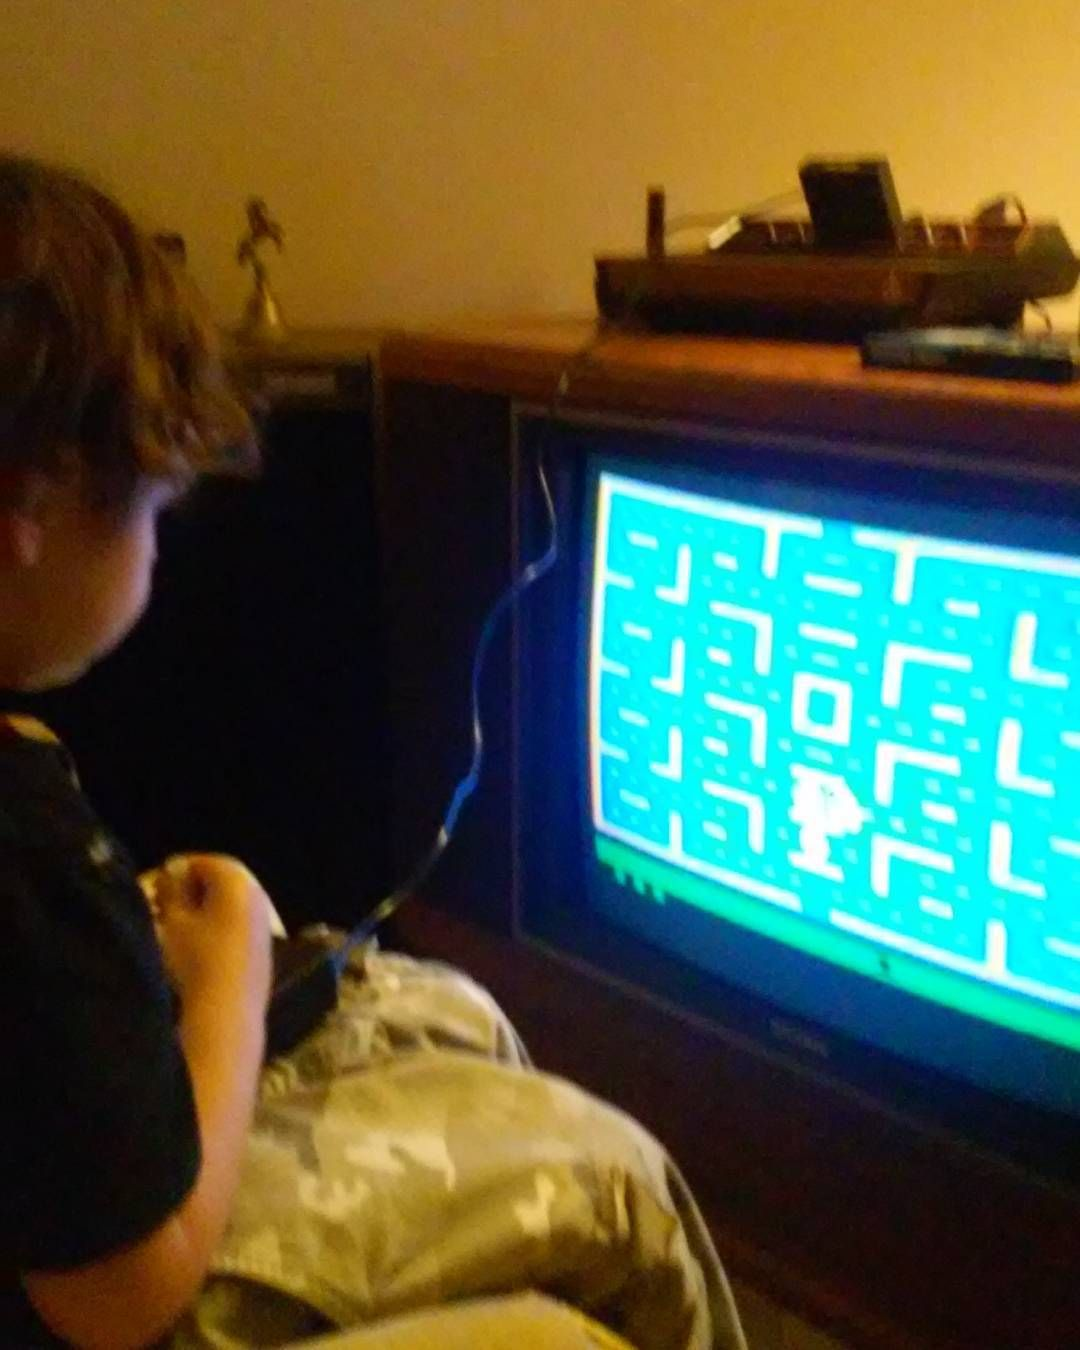 You'd like this one by orangeporridge39 #atari2600 #microhobbit (o) http://ift.tt/263rWFh my oldest learning how to play Pac Man on a real Atari 2600! Yes your eyes are not playing a trick on you that's a floor tube tv set. Daddy loves his vintage   #videogame #atari  #vintage #kids #photooftheday #instagram #instagrammers #instamood #instadaily #igers #igdaily #parentingwin #geek